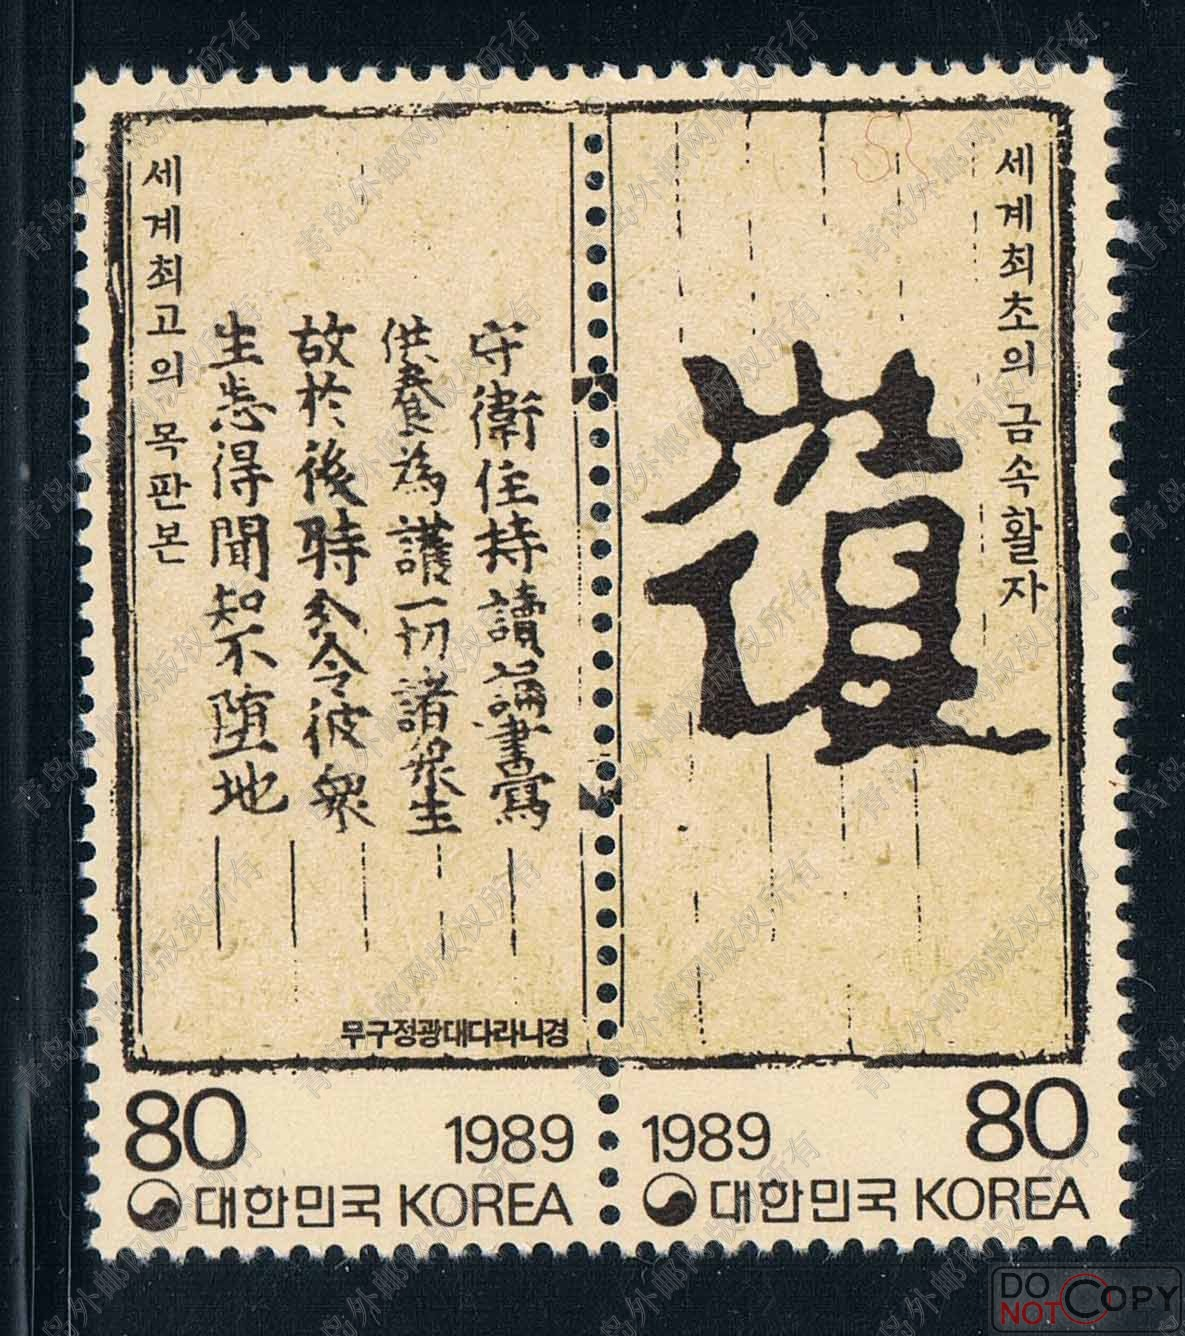 1989 Korea KR0727 science group fourth printing Chinese characters stamps 2 new 0405 стоимость